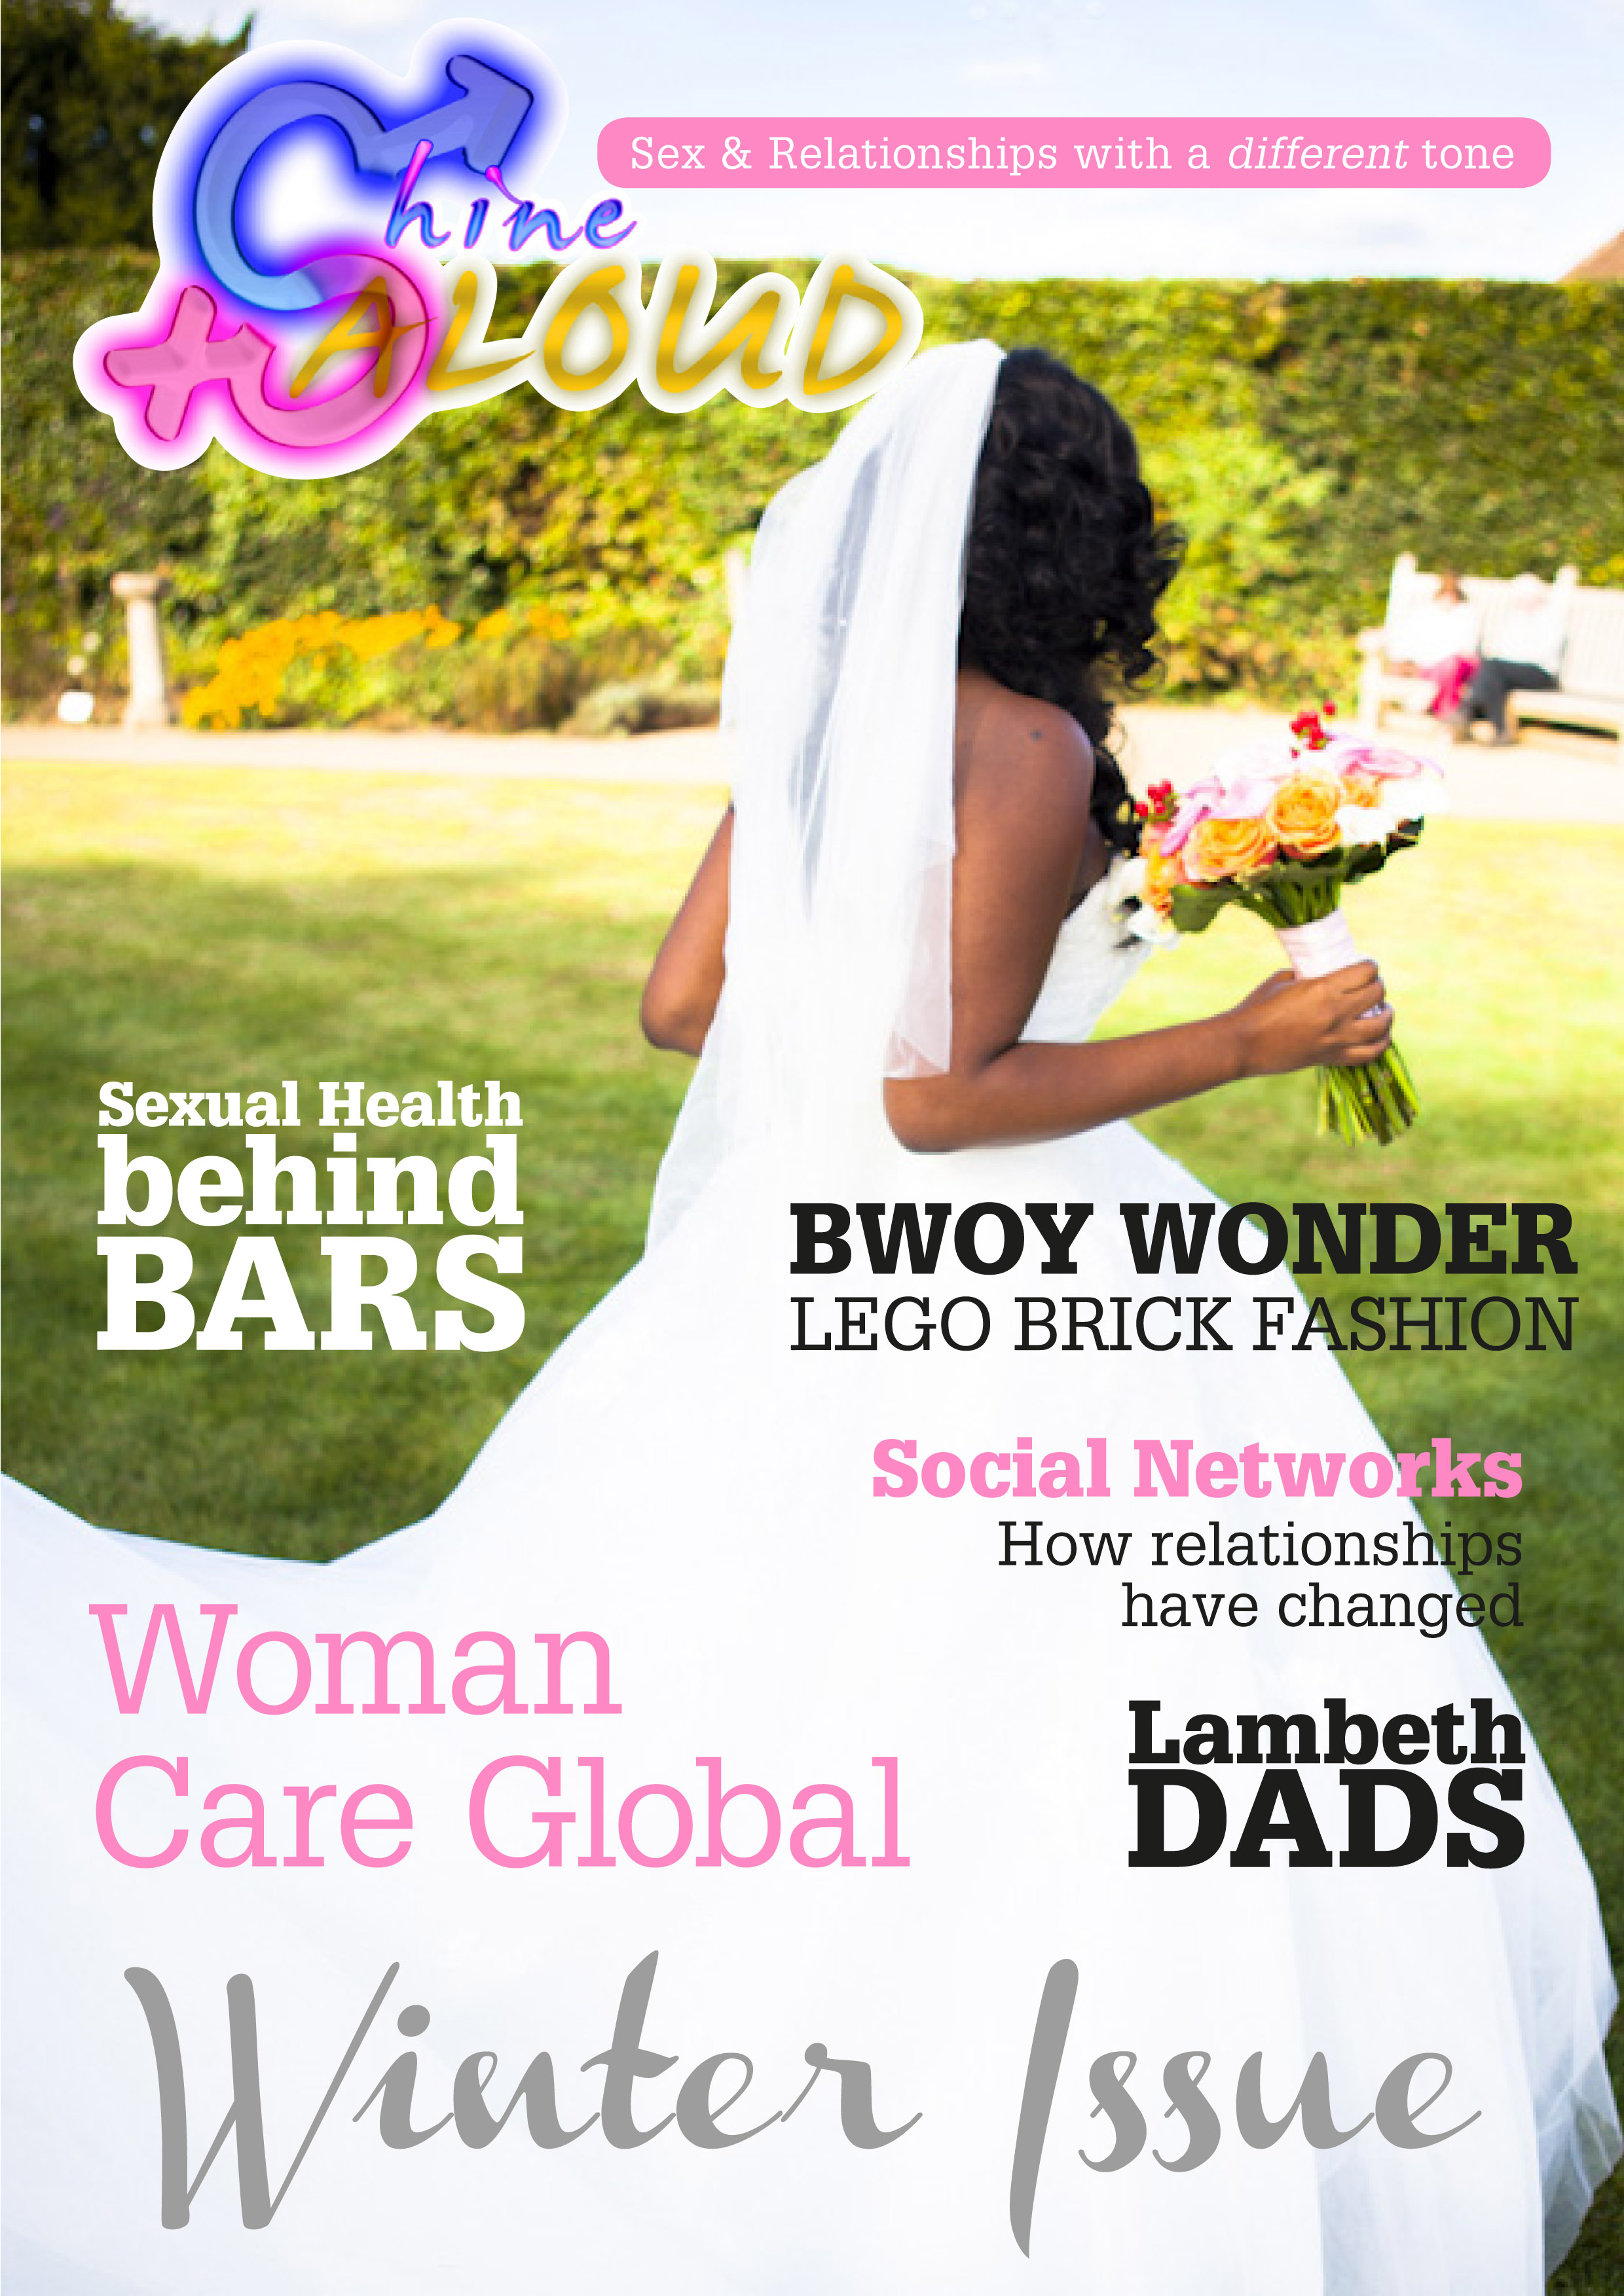 Issue 4 – OCTOBER 2012